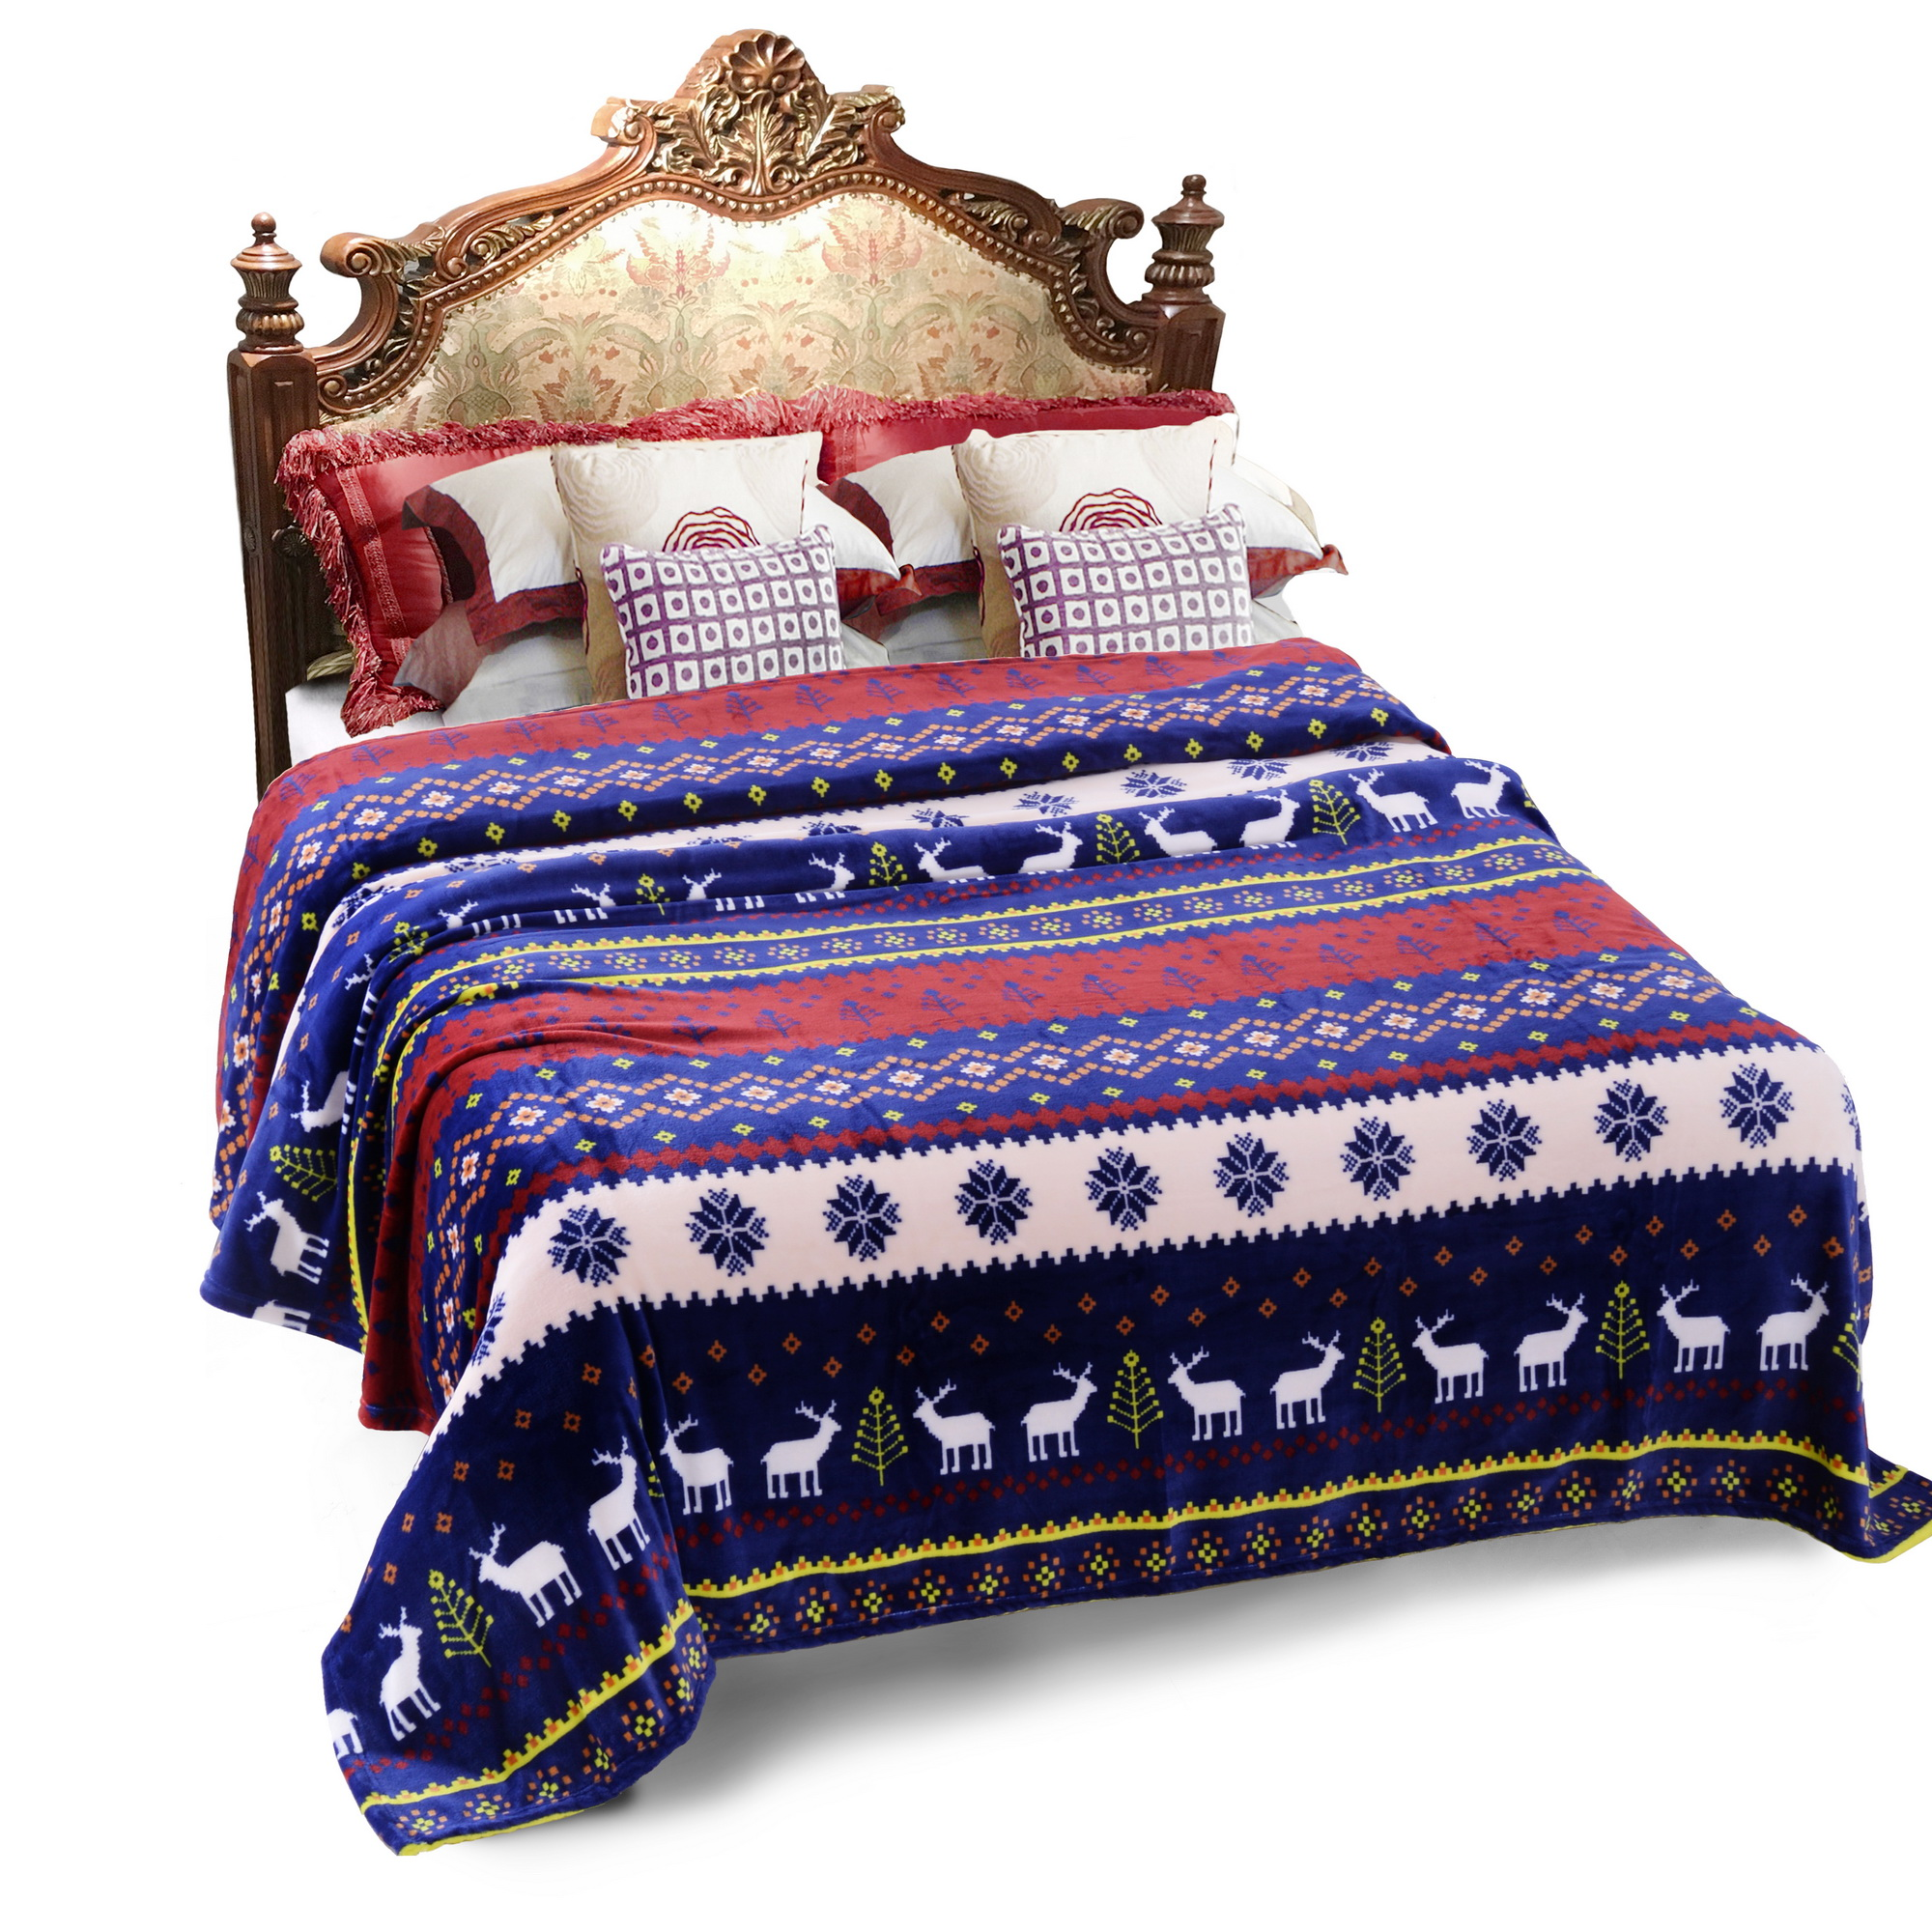 Multipurpose Cozy Warm Throw Blanket for Bed Couch Super Warm Bed Blanket Queen 79 x... by JML